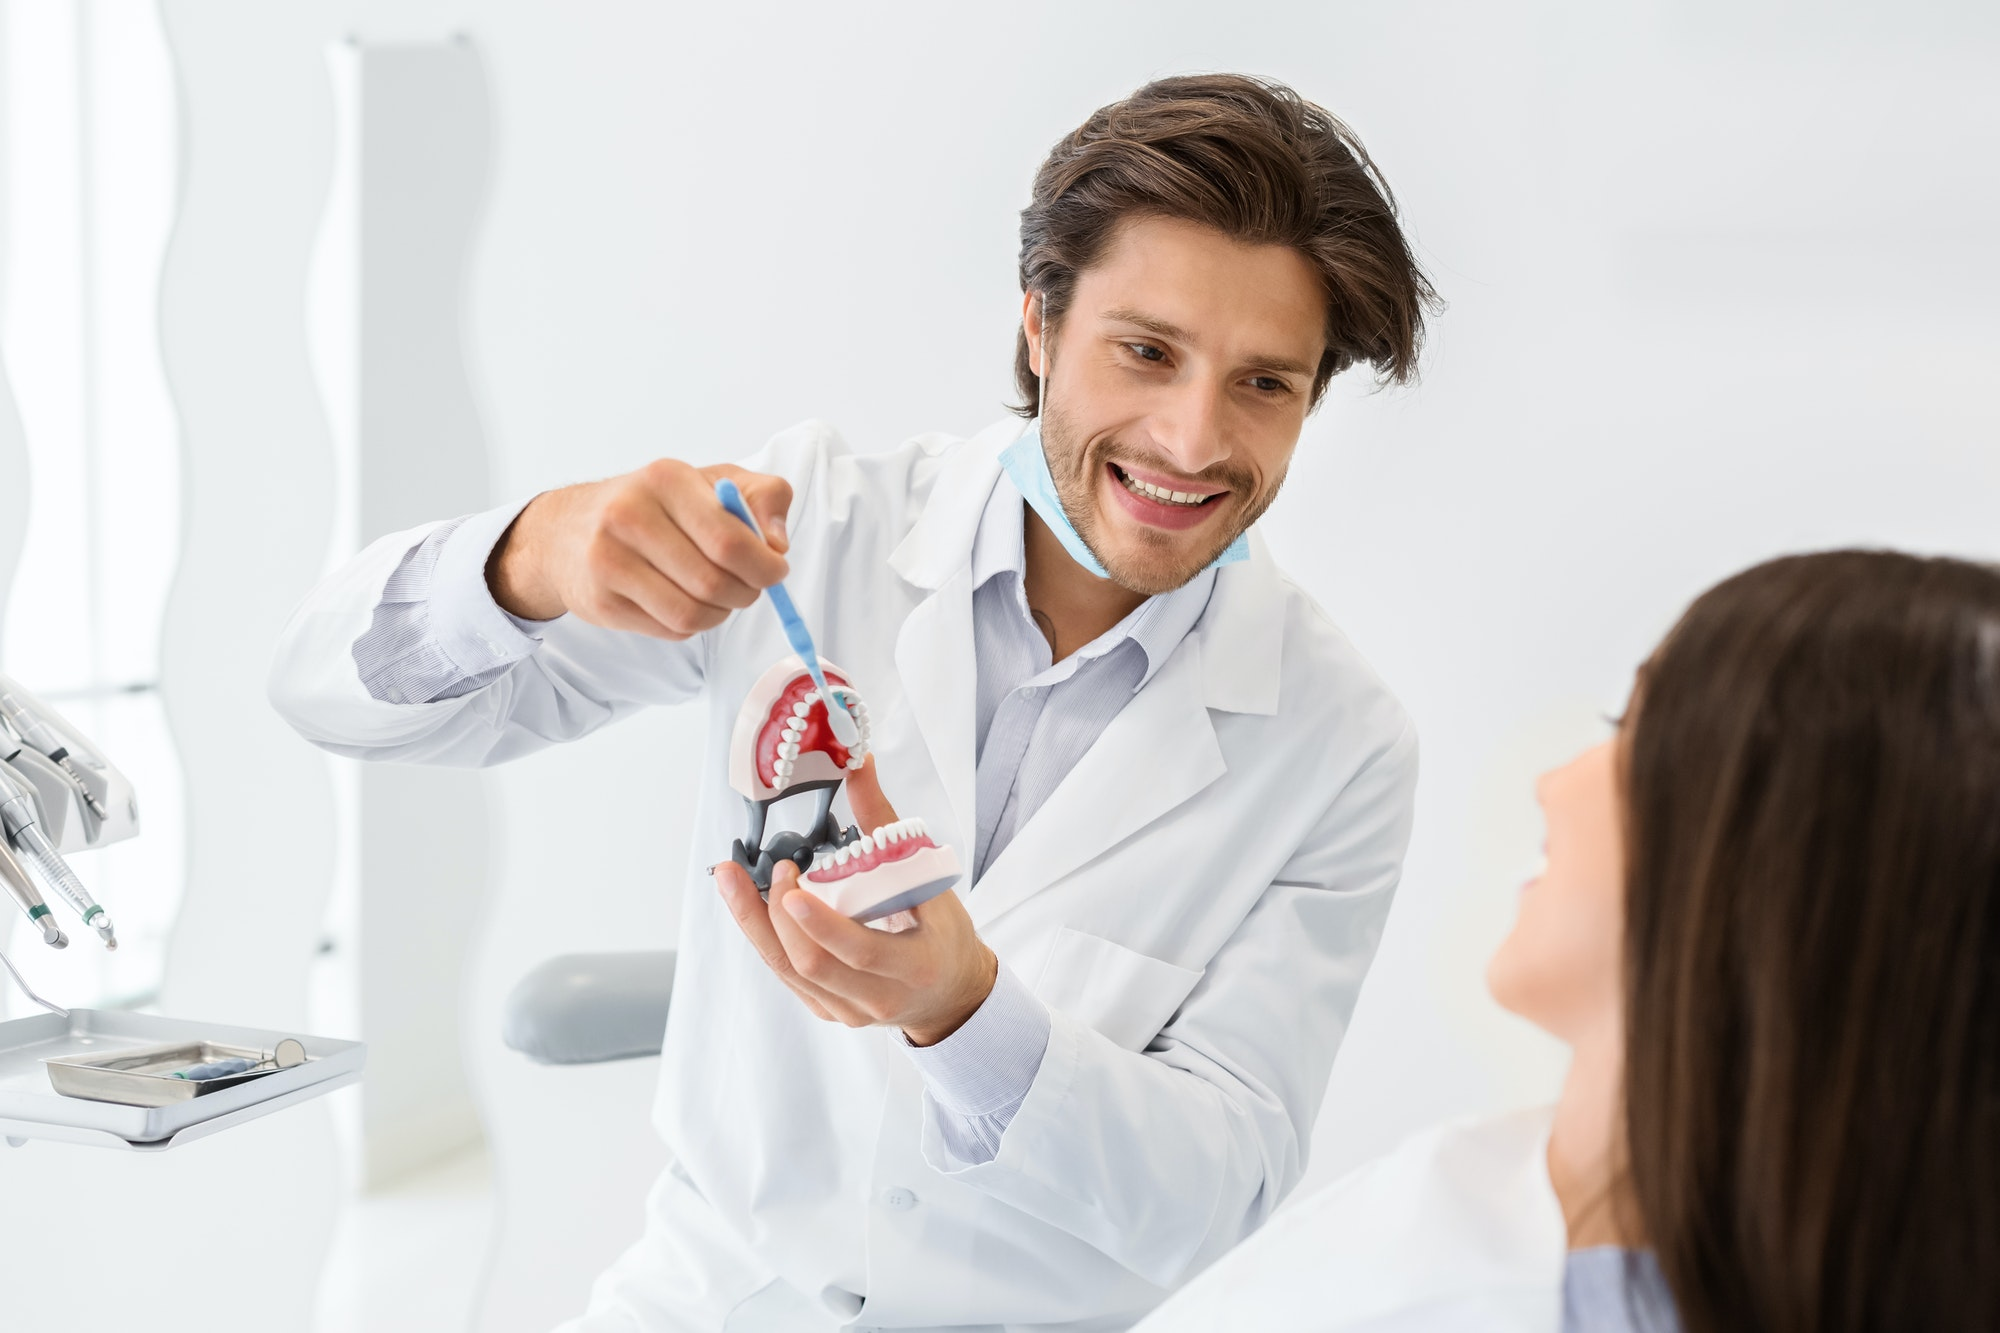 Cheerful doctor showing how to brush teeth using jaw model